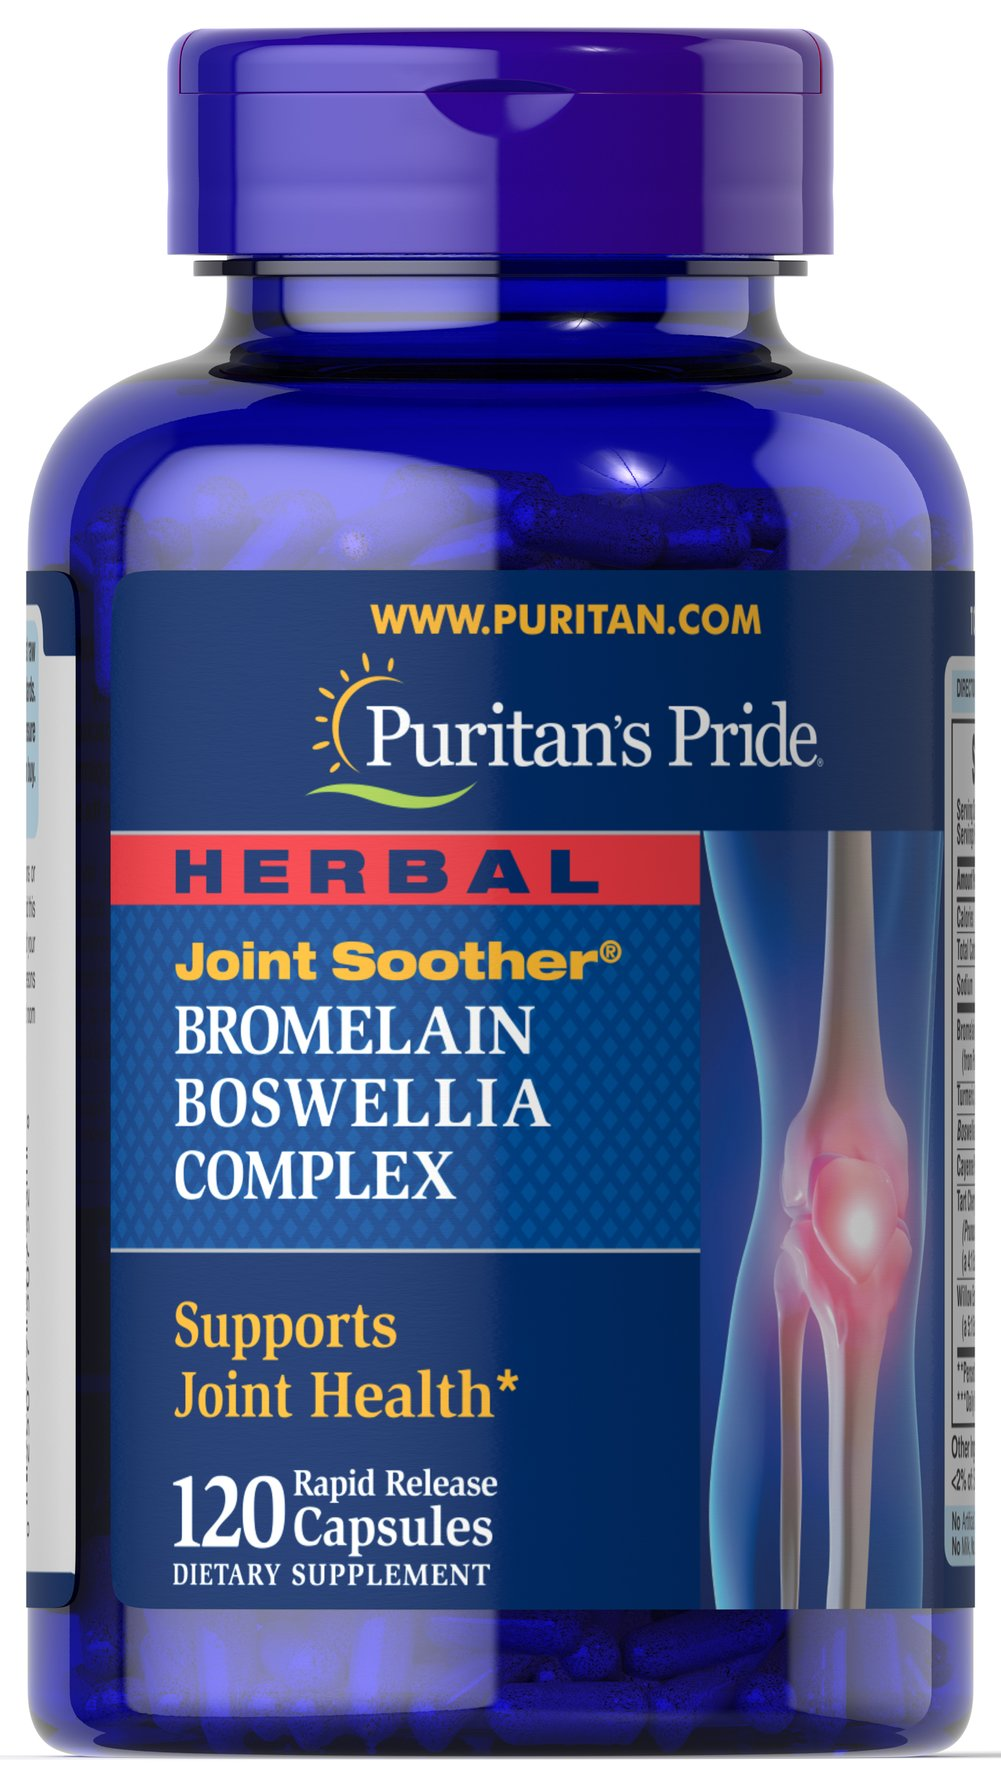 Herbal Joint Soother® Bromelain Boswellia Complex with Turmeric  120 Capsules  $30.39